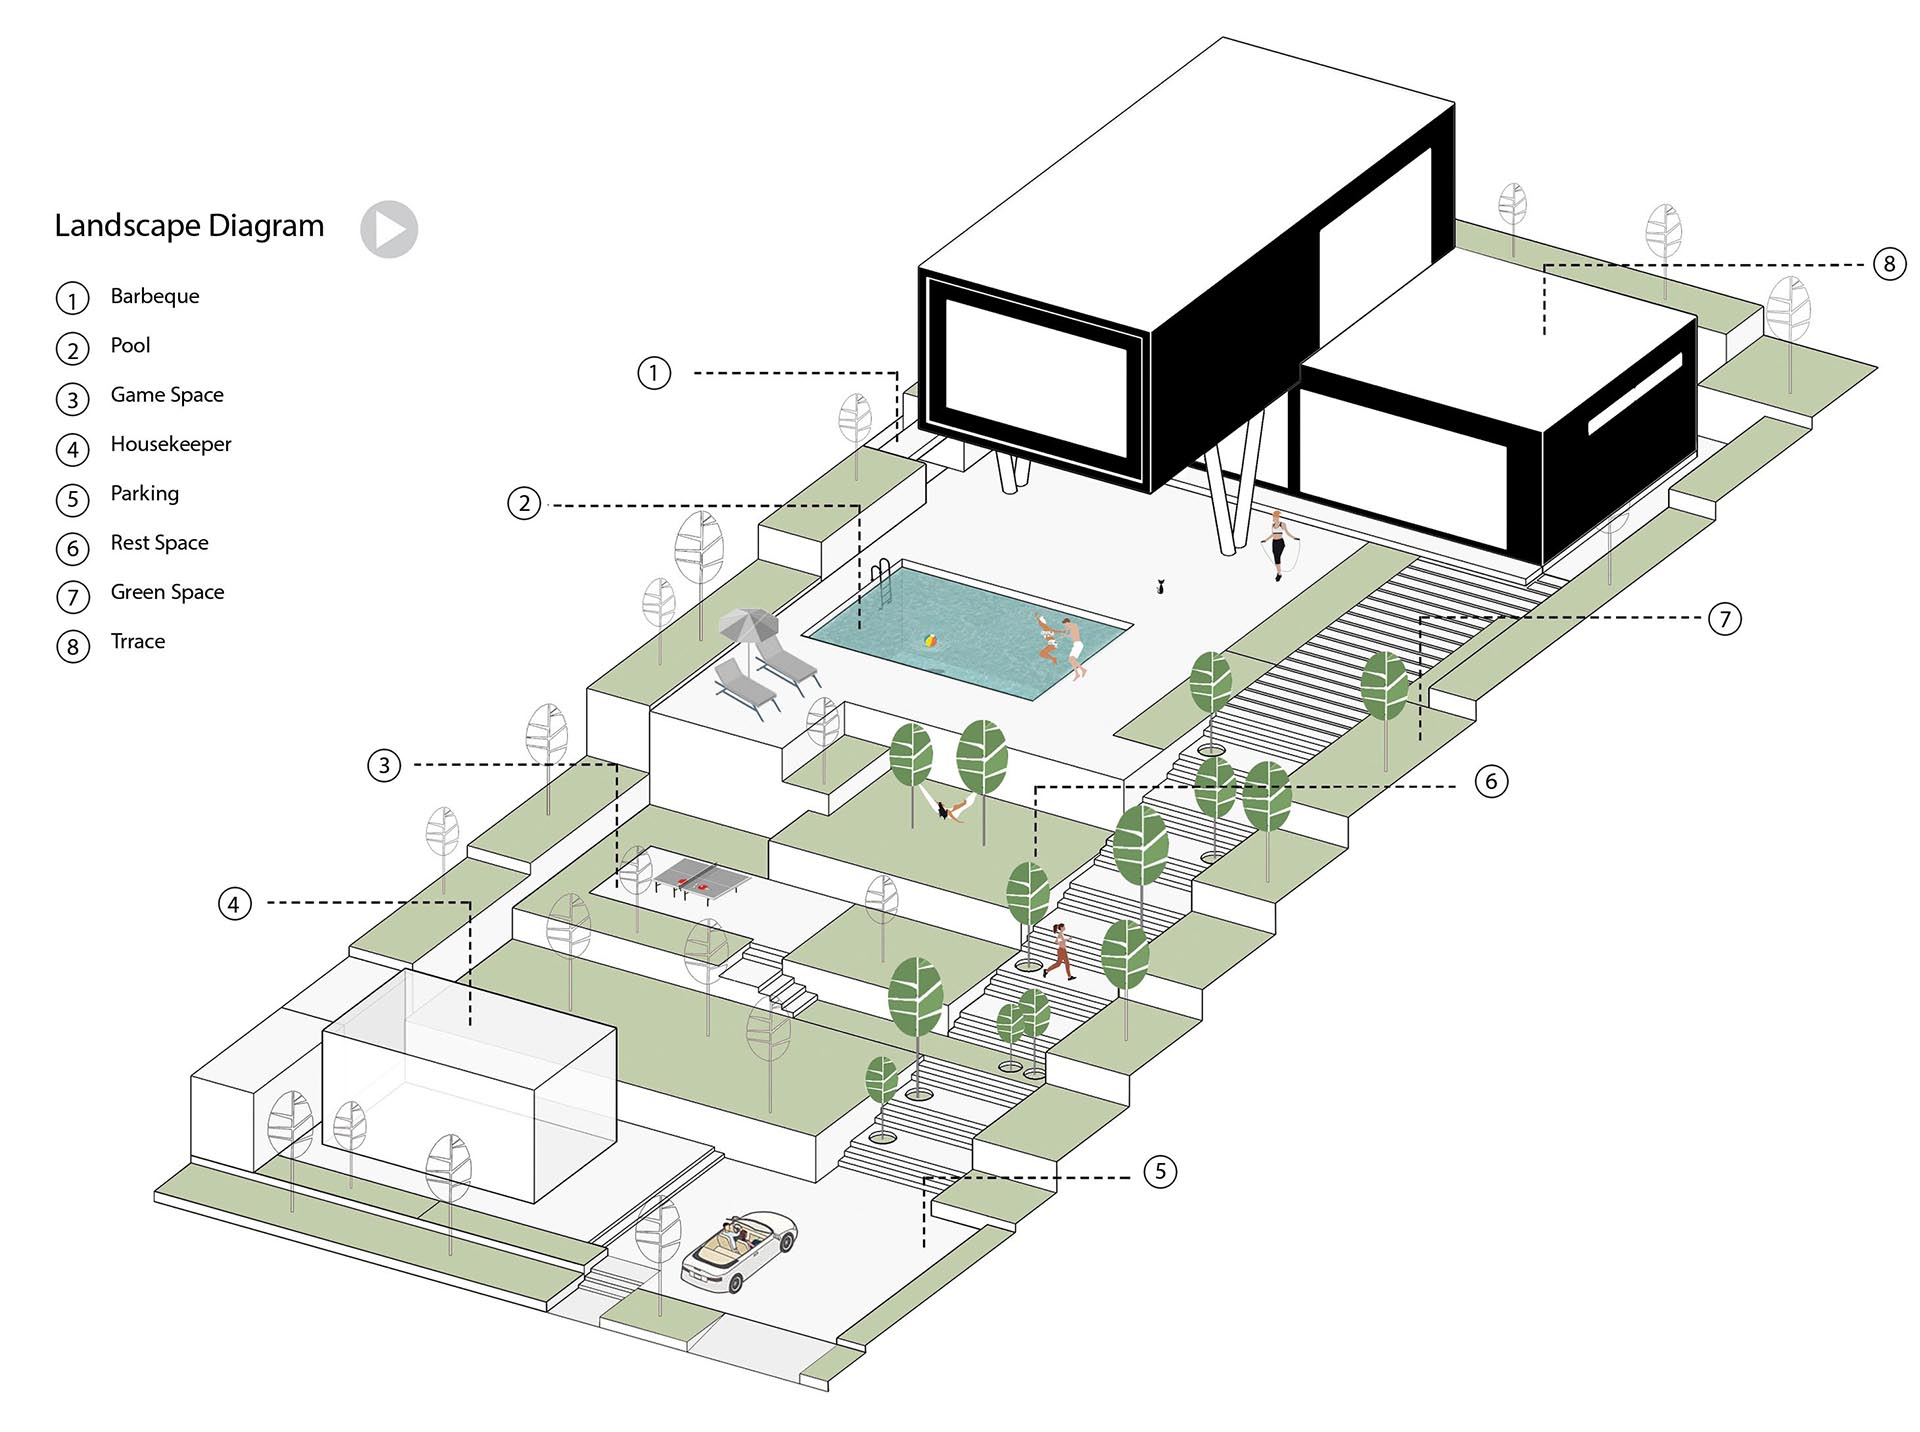 A landscape diagram for a terraced garden with a swimming pool.